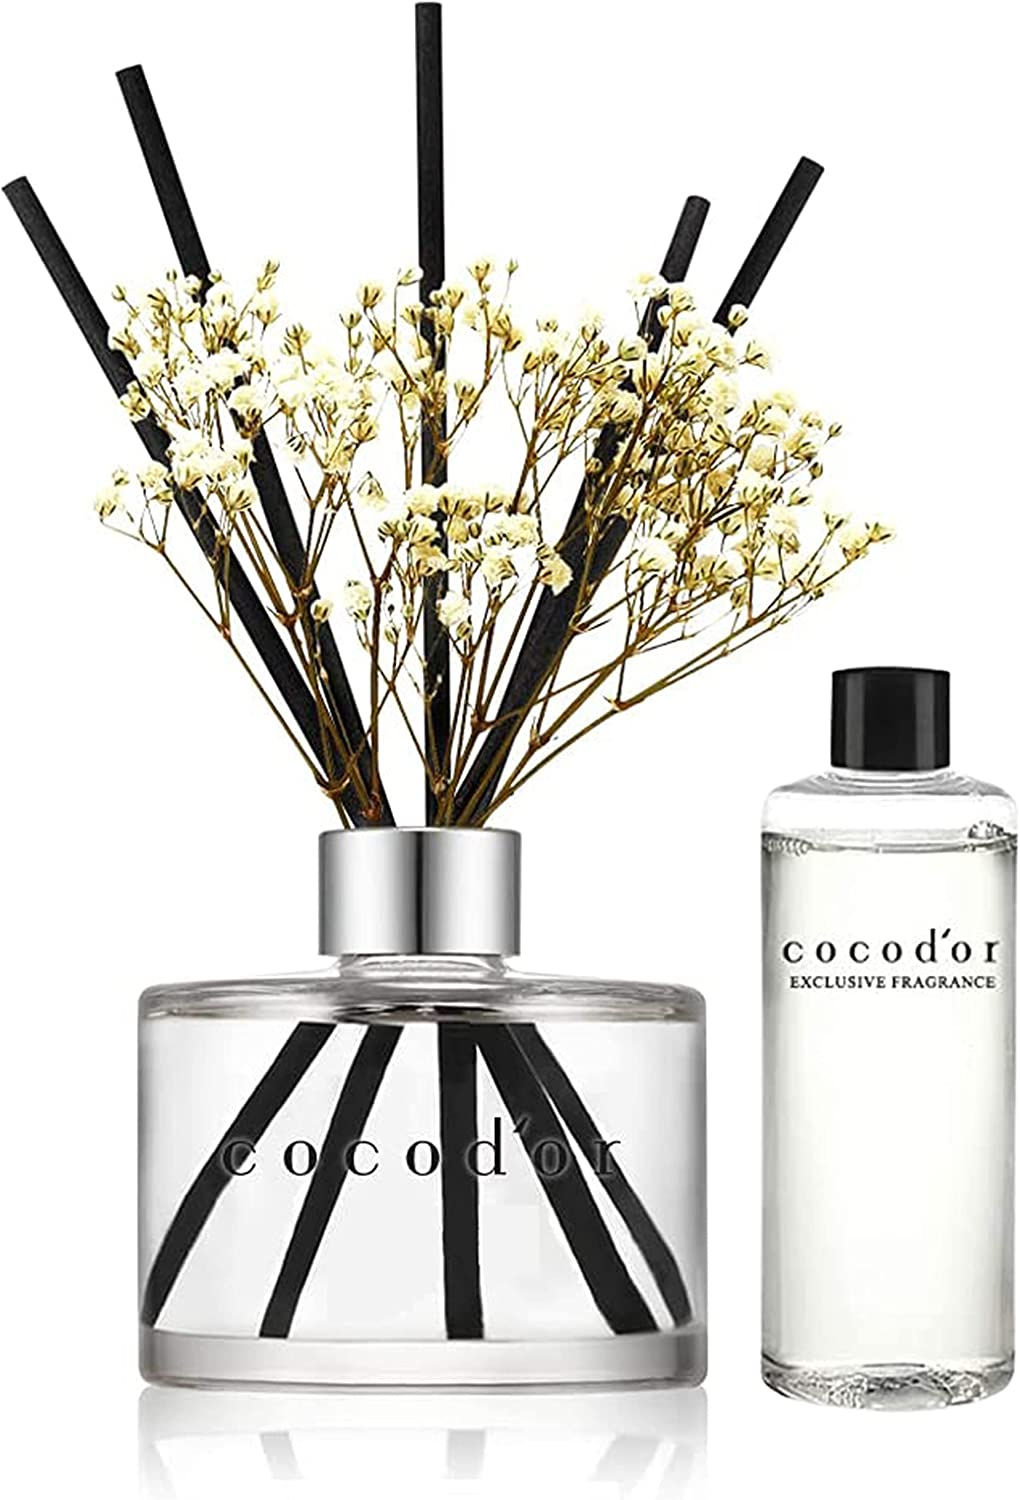 Cocodor Sales for sale Flower Reed Diffuser Overseas parallel import regular item Kit Freshener Fragrance with Air